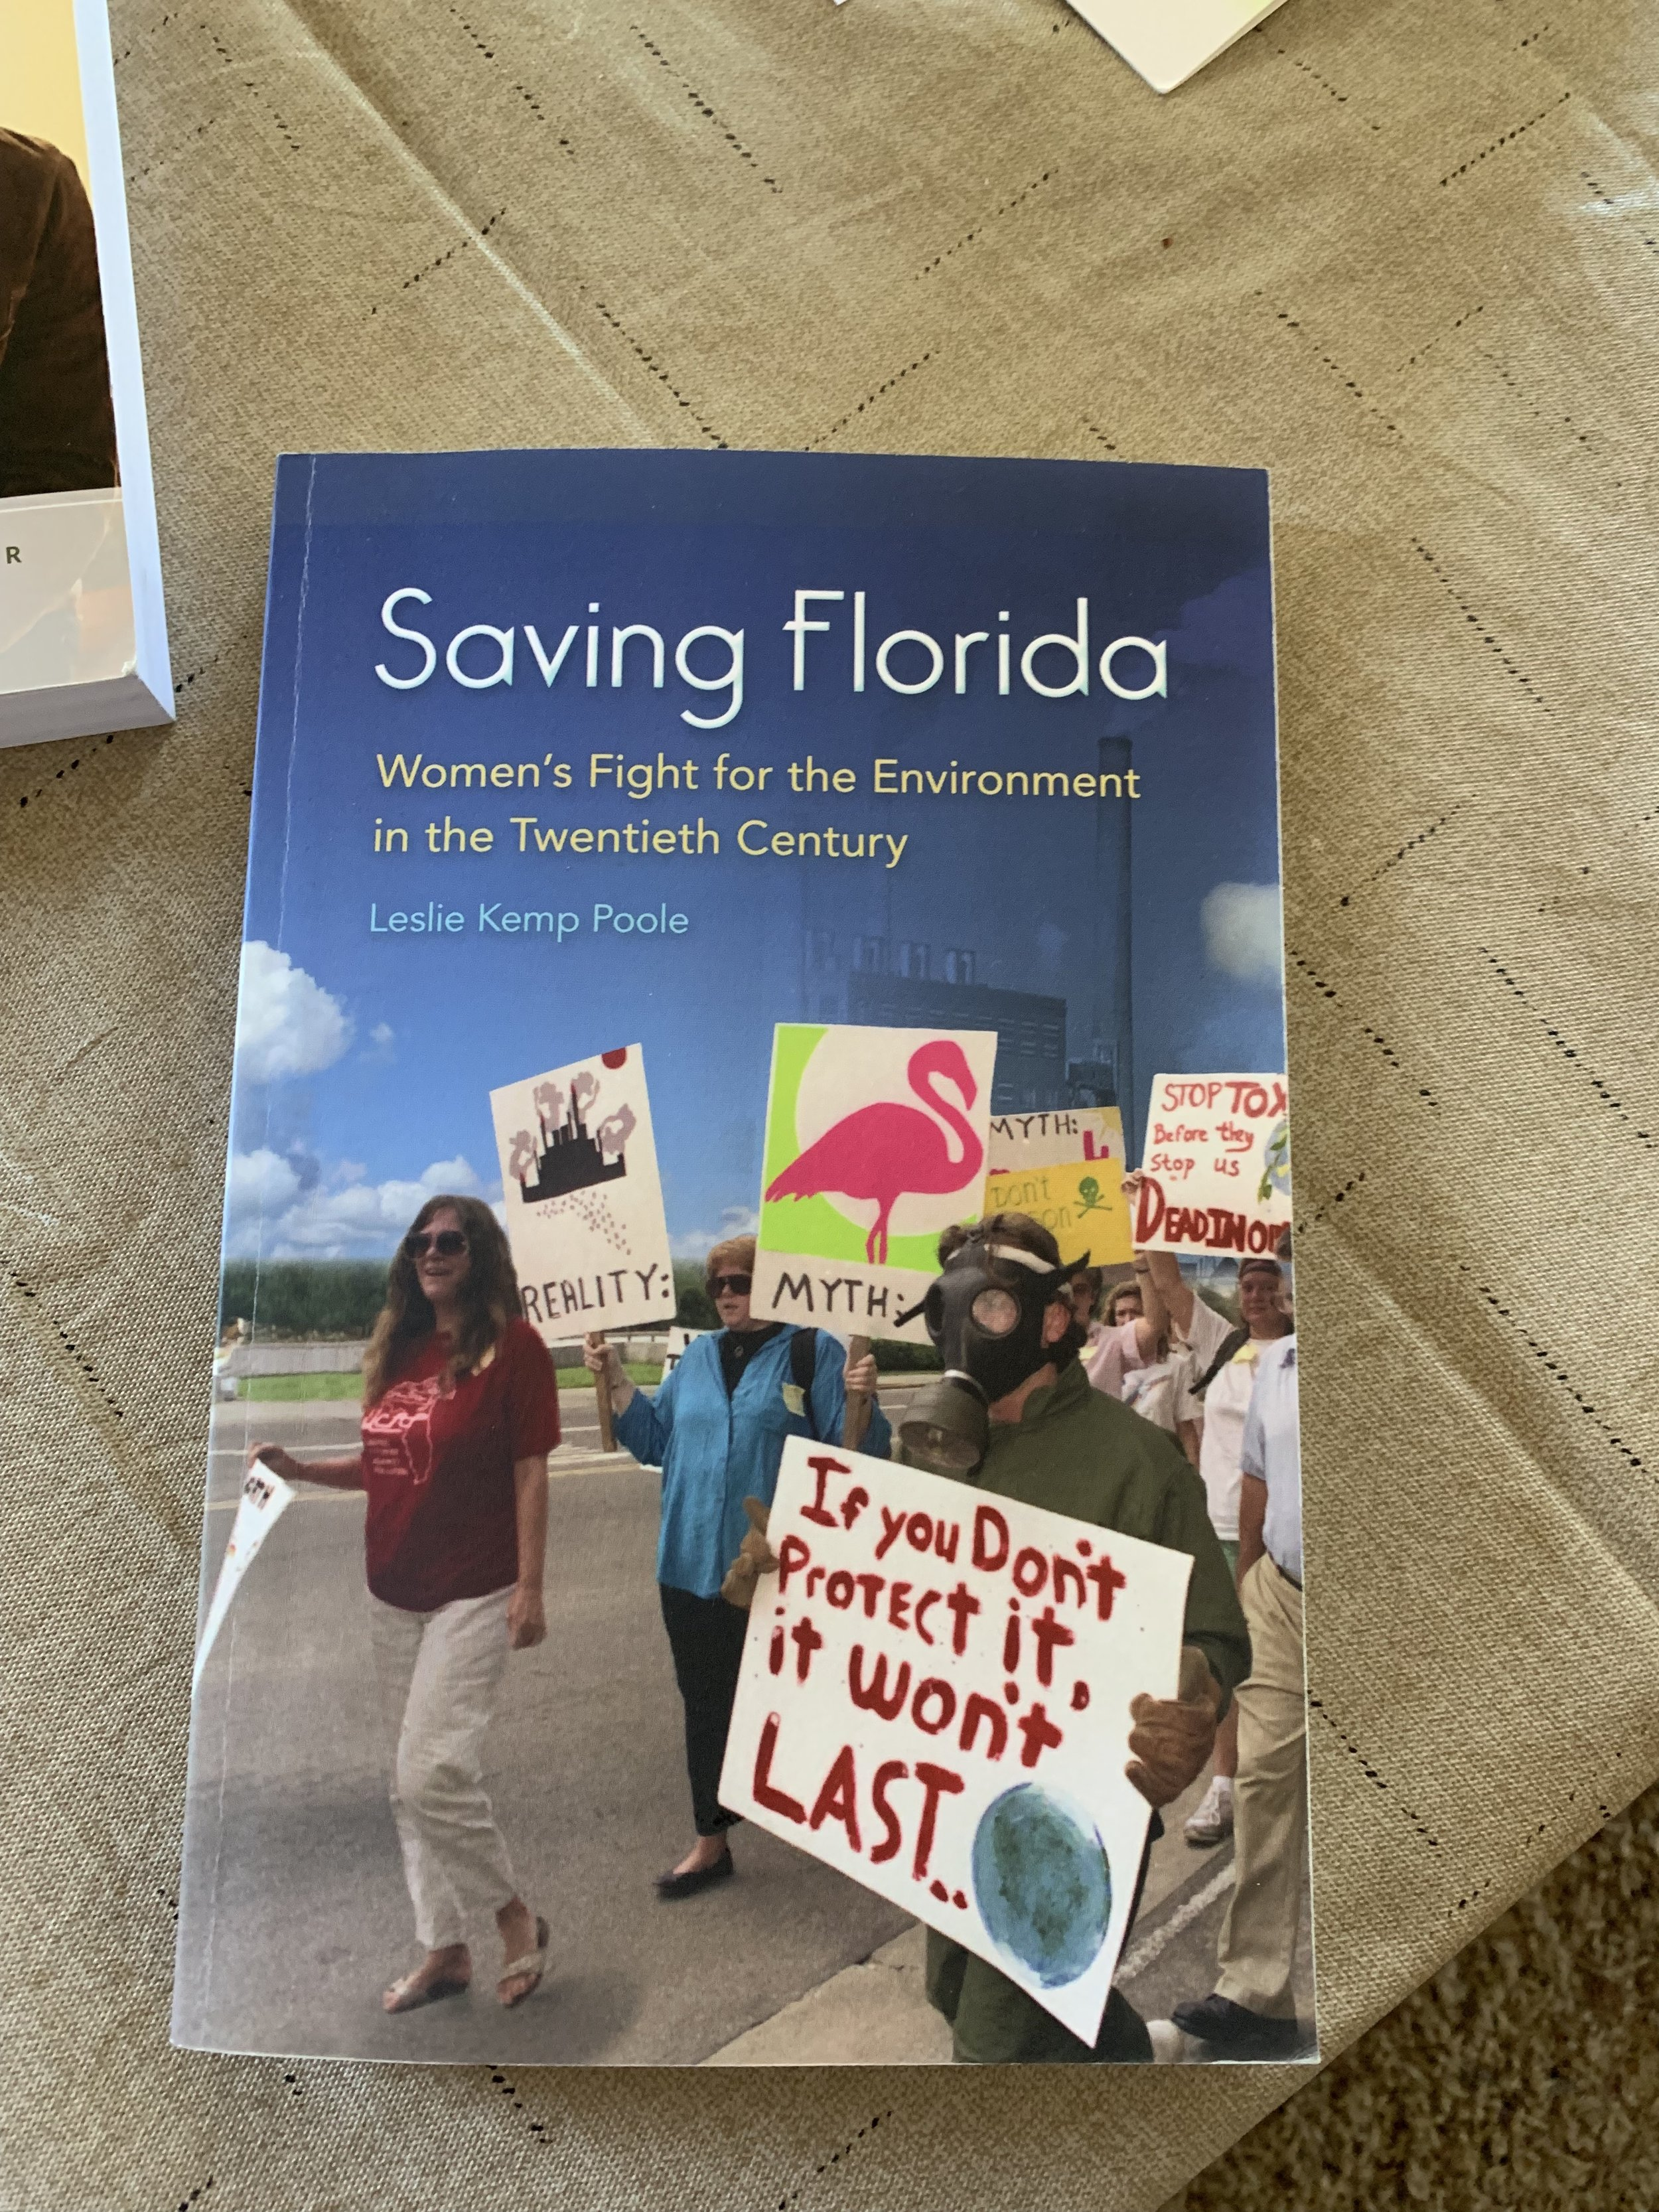 In Florida women have been at the fore front of the environmental movement. This book tells their stories.